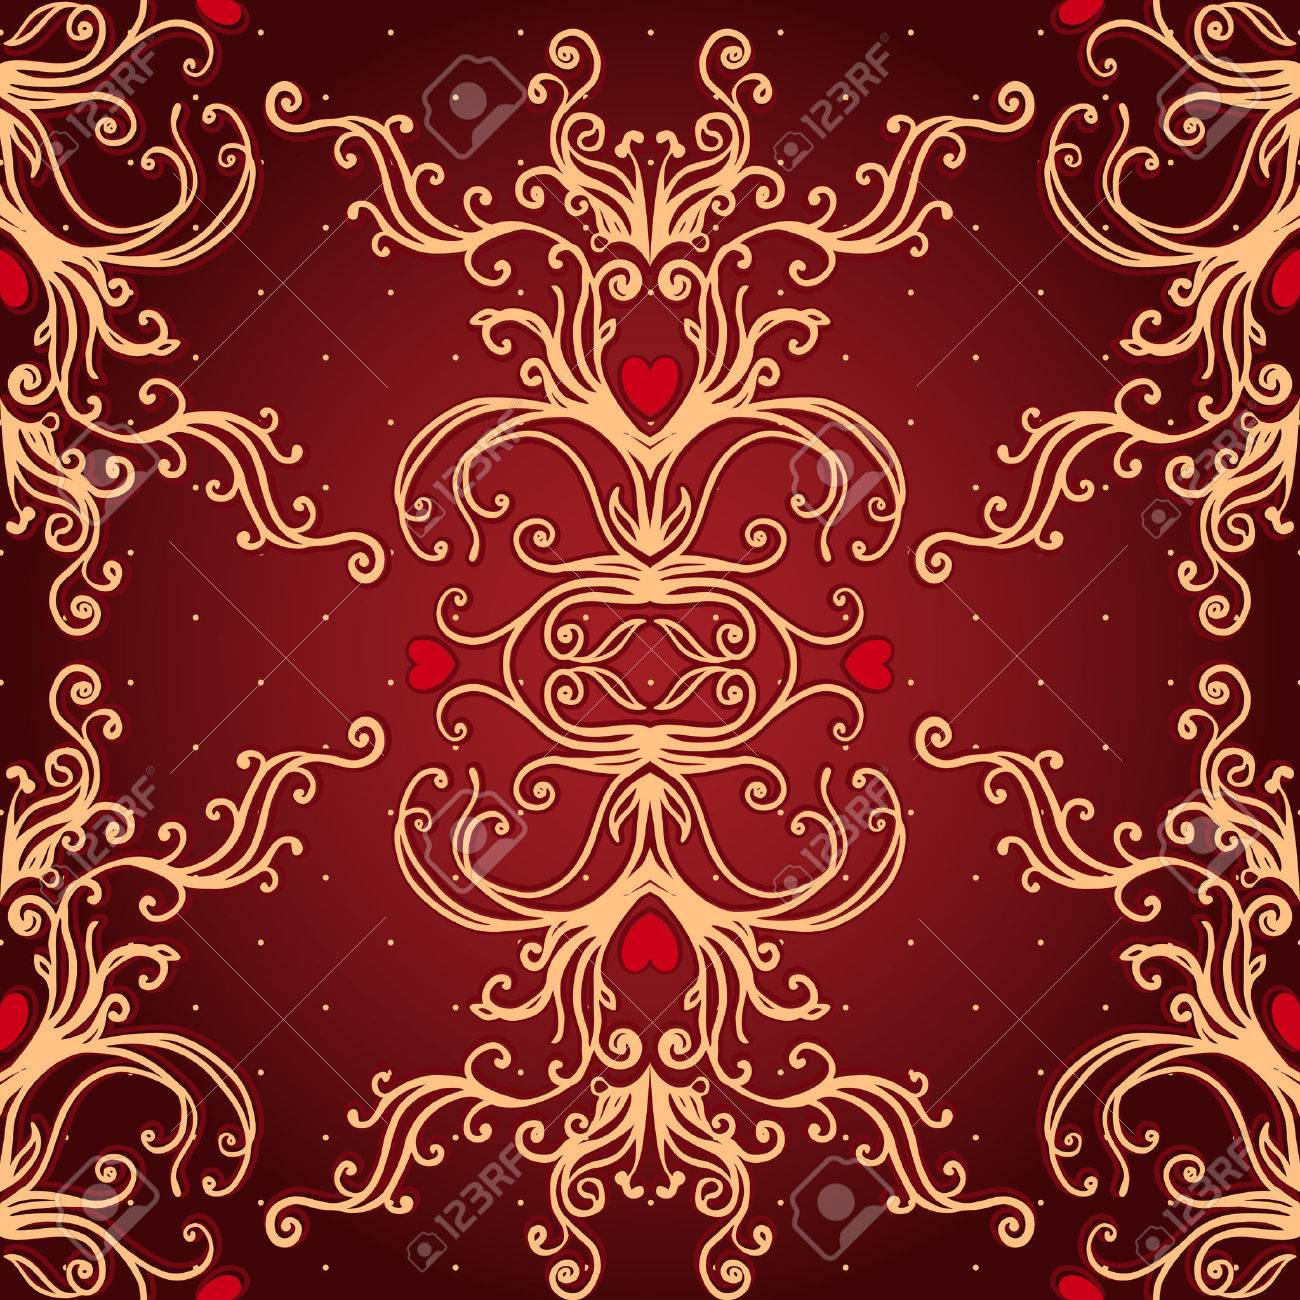 Vintage background ornate baroque pattern vector illustration stock - Vintage Background Ornate Baroque Pattern Vector Illustration Stock Vector 33592500